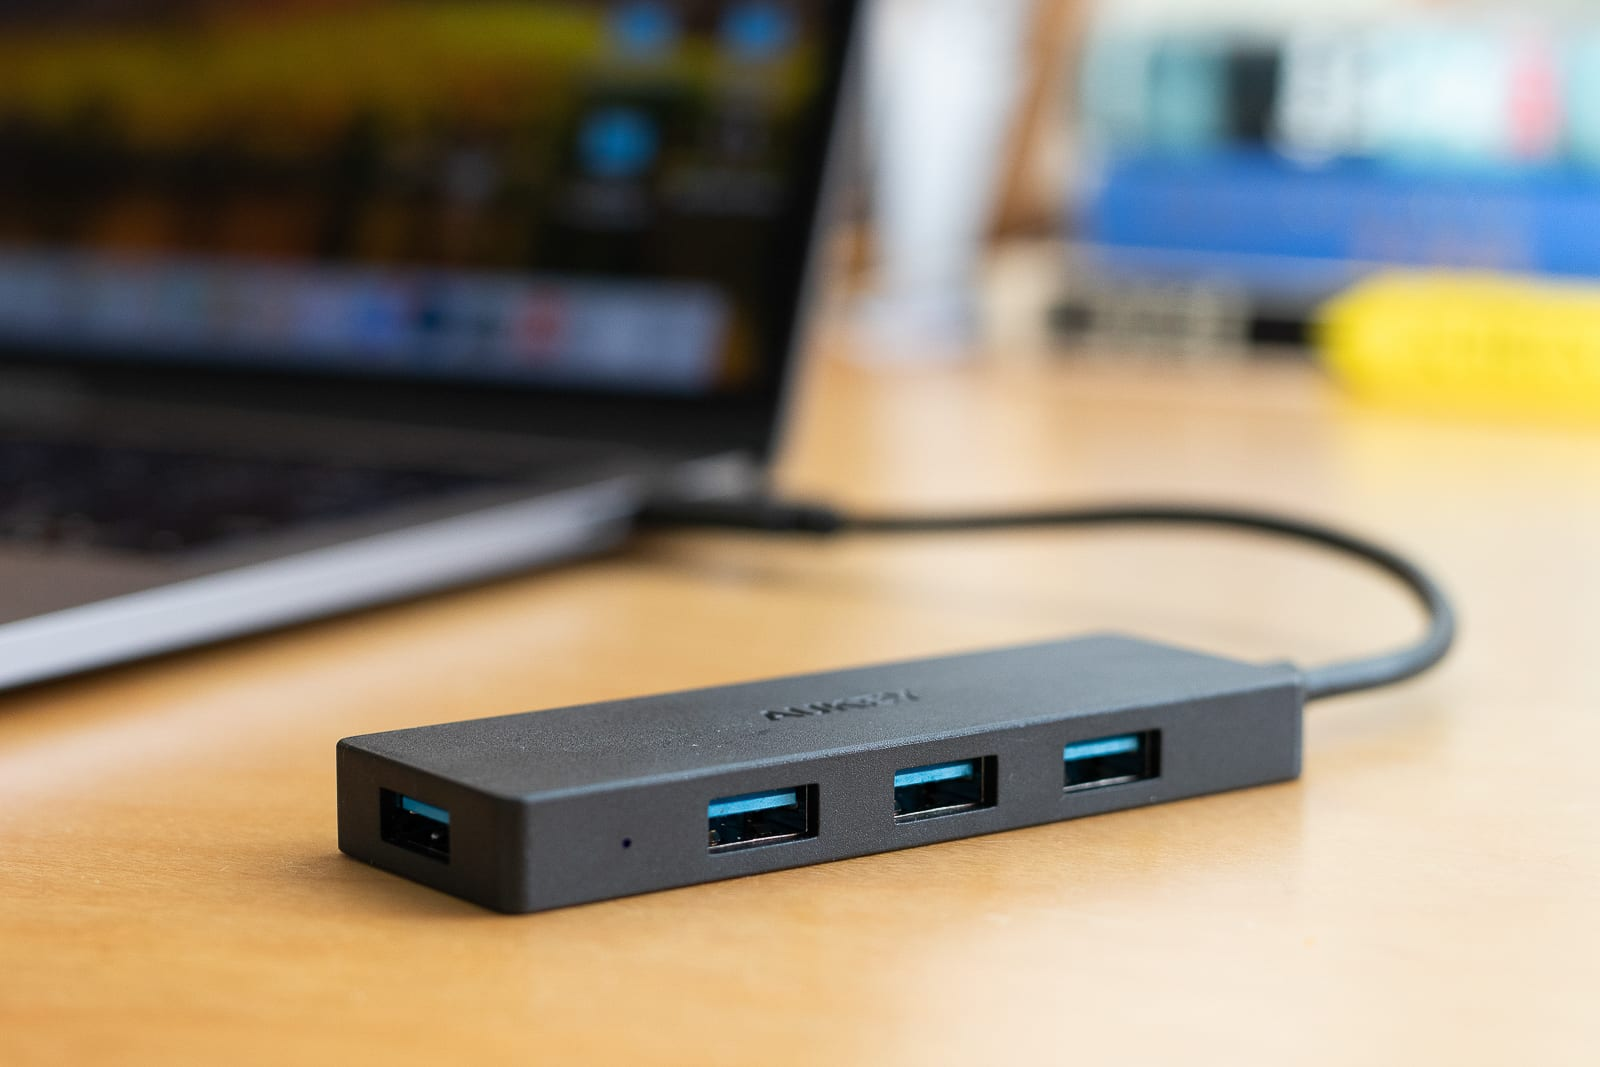 USB-C hubs and docks